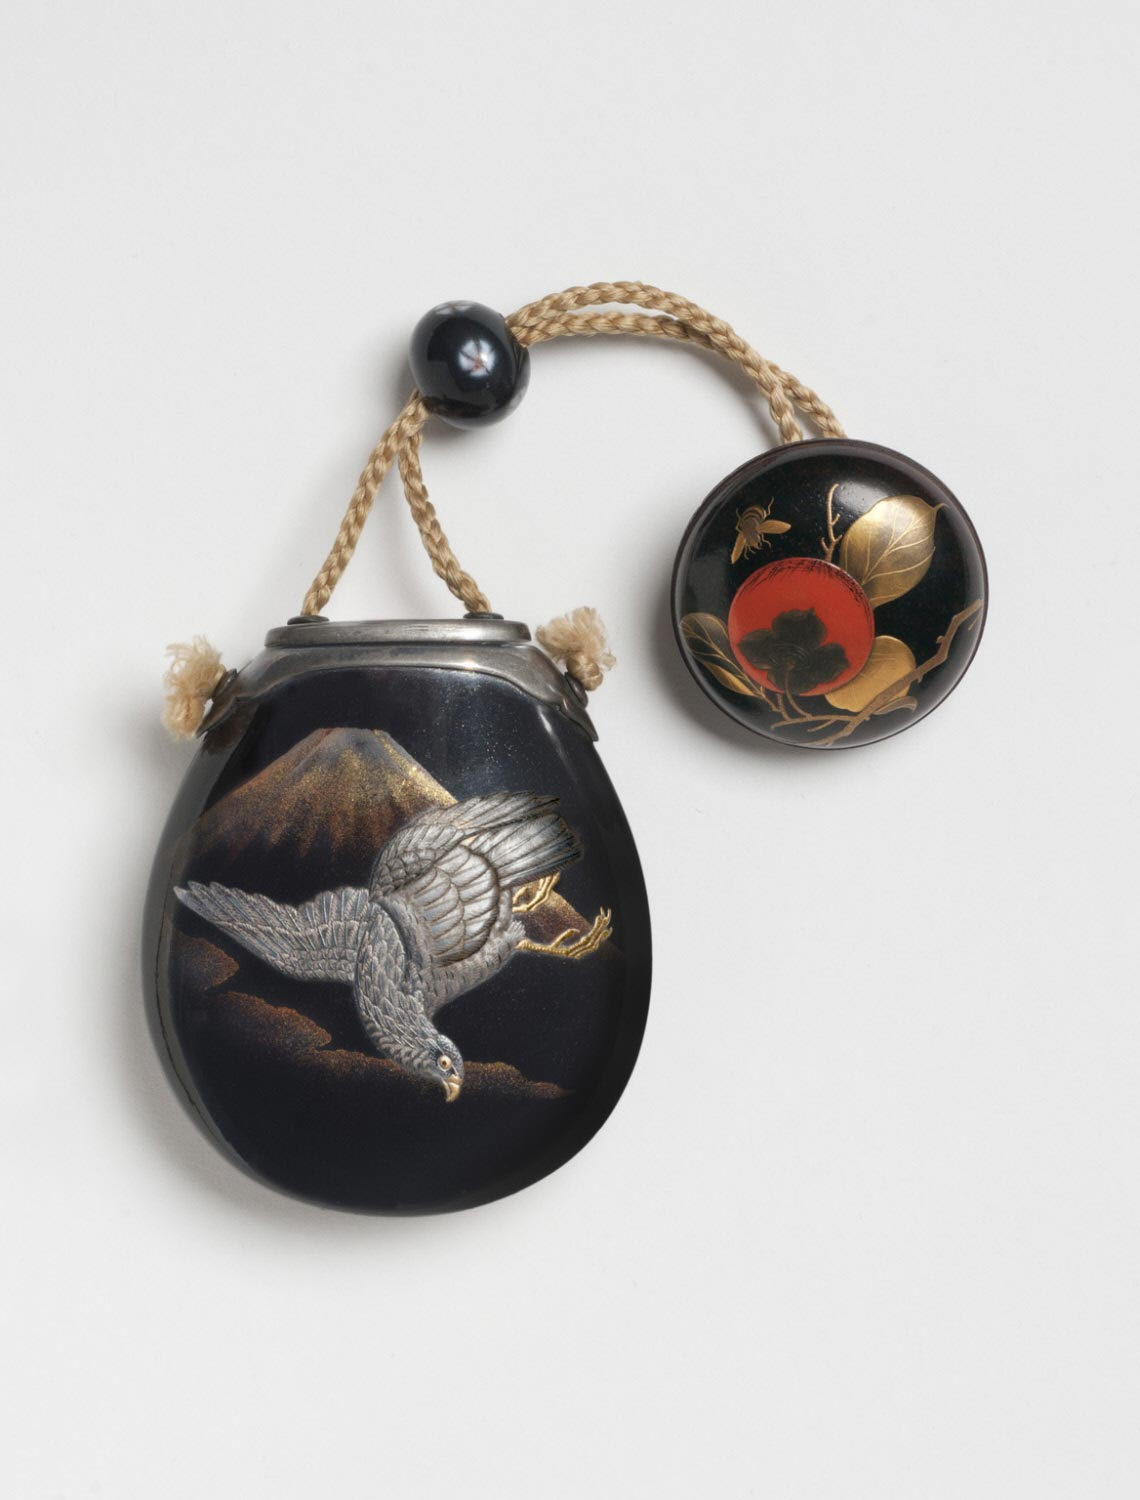 Inro in the Form of an Eggplant with Mount Fuji and a Falcon